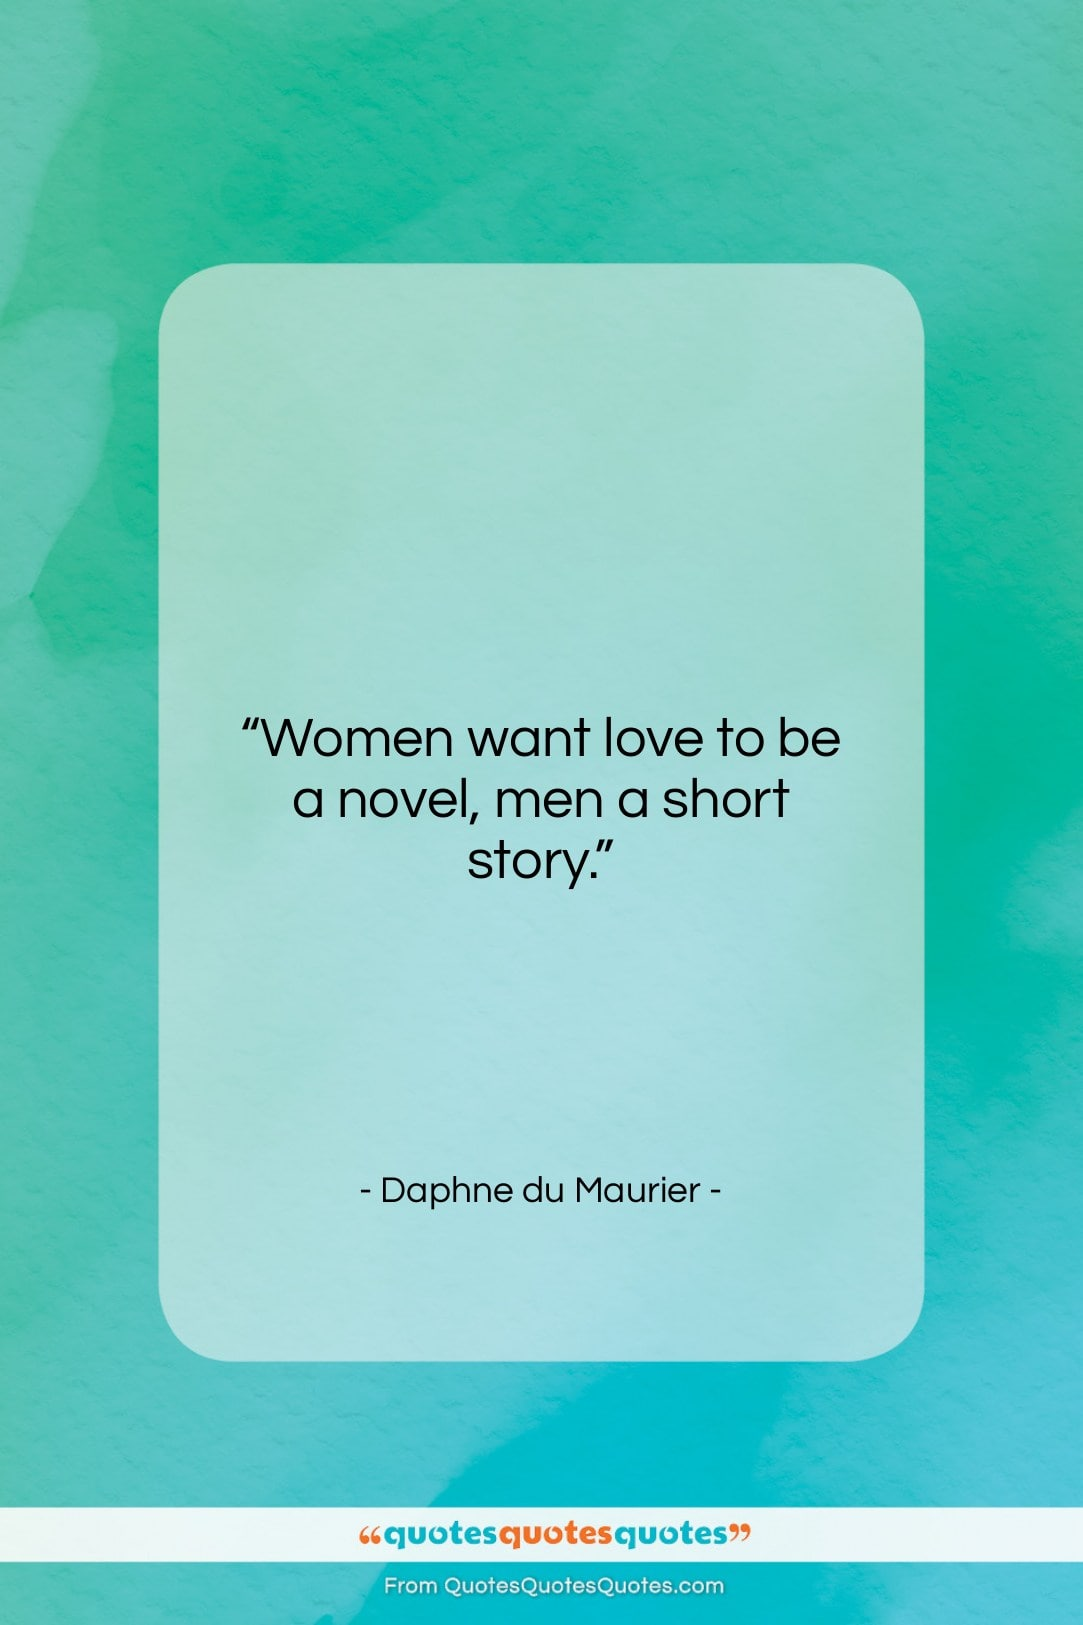 """Daphne du Maurier quote: """"Women want love to be a novel,…""""- at QuotesQuotesQuotes.com"""